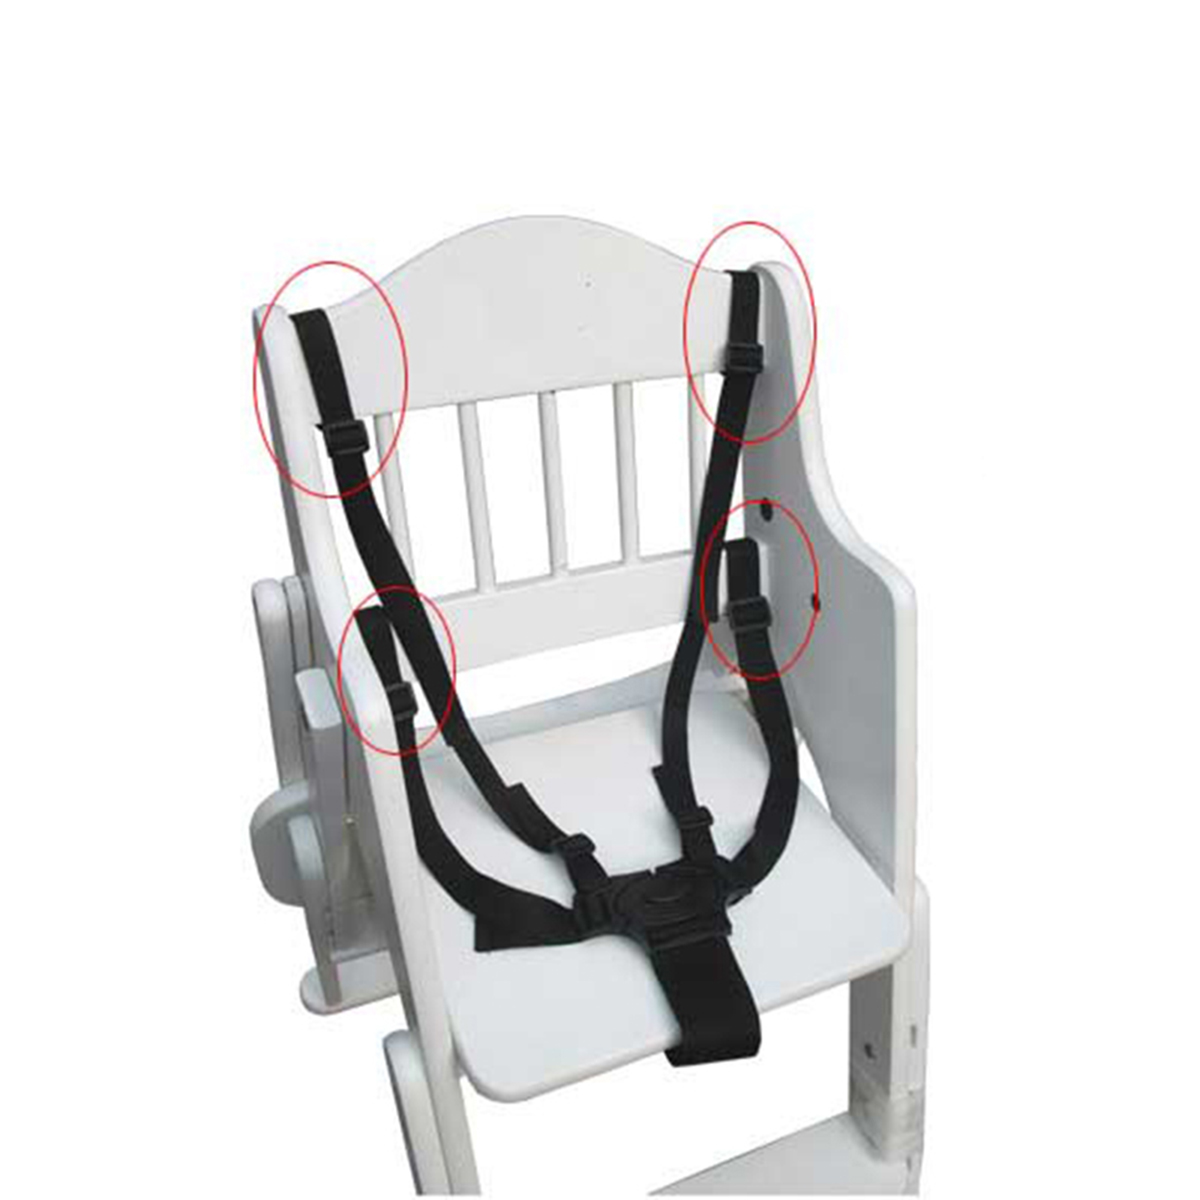 baby portable high chair safety harness outdoor patio chairs babies stroller five point belt